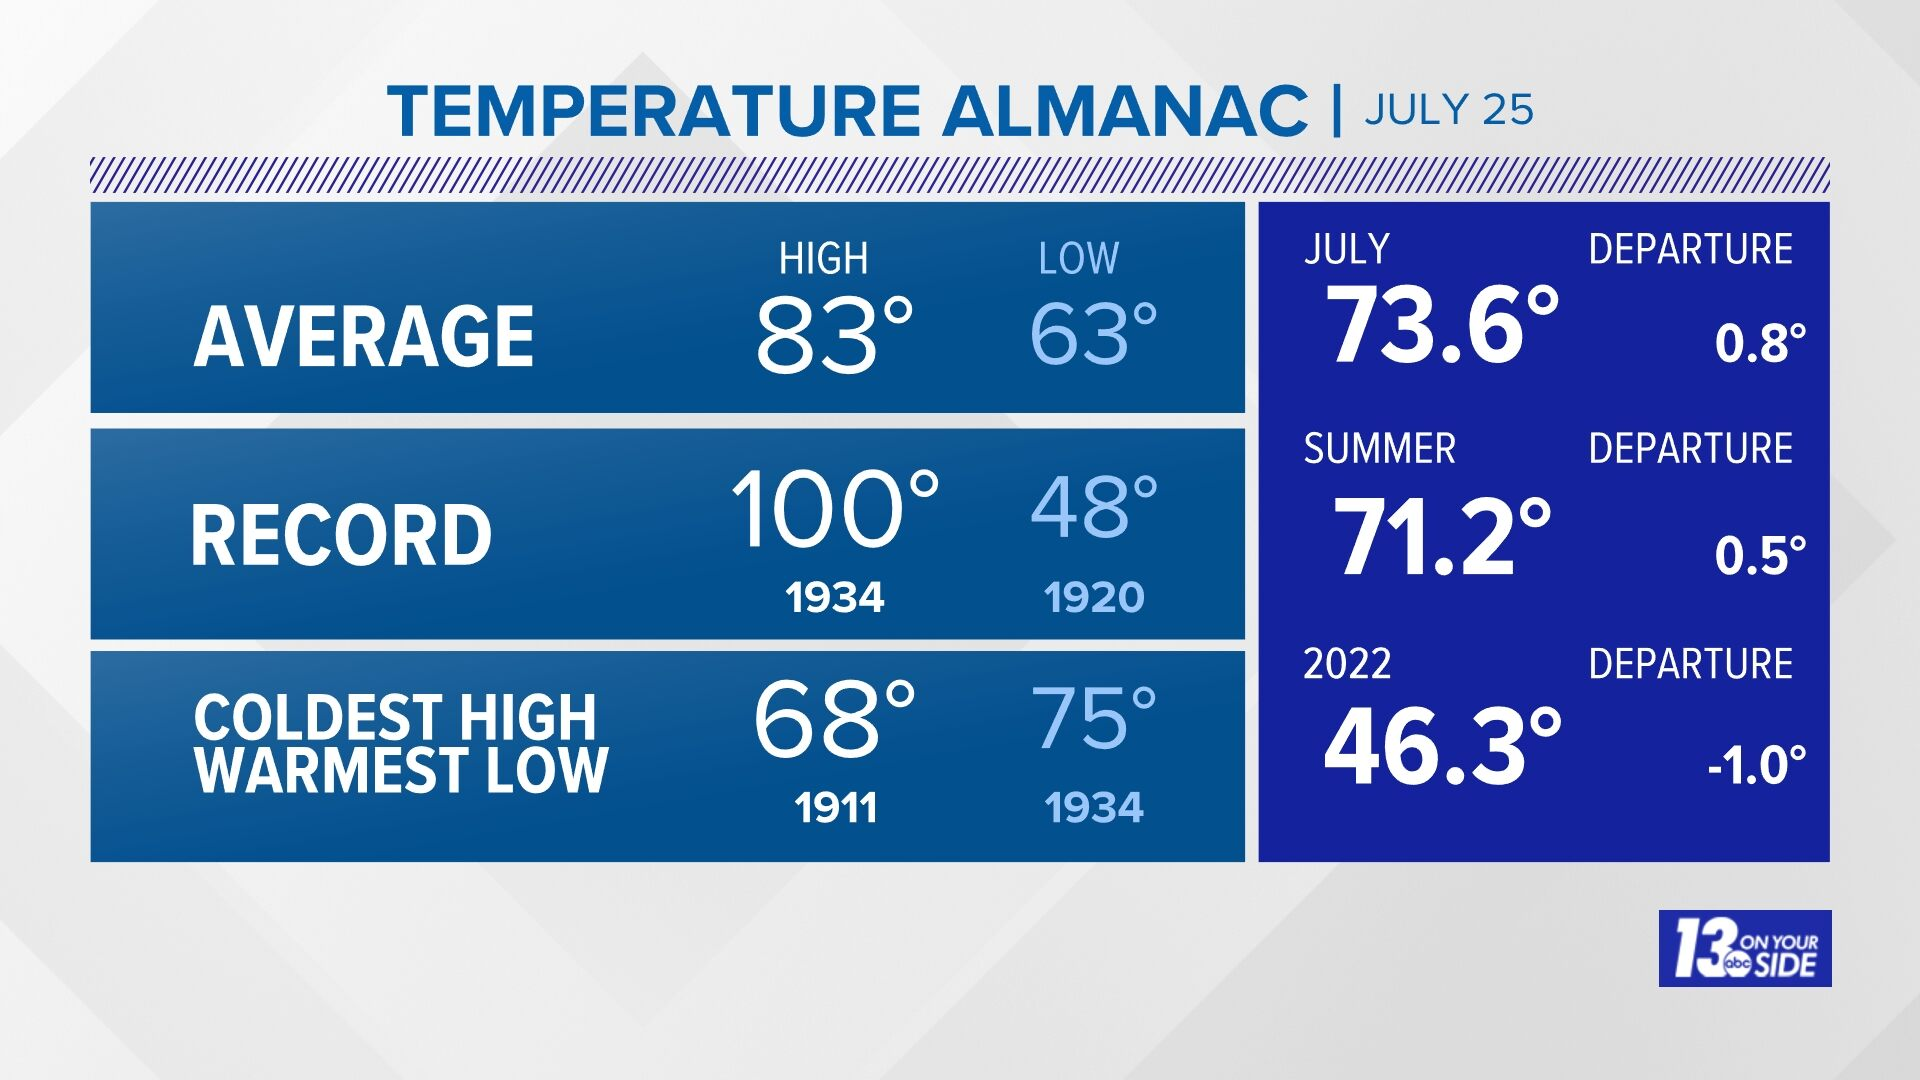 Grand Rapids Almanac Temperatures